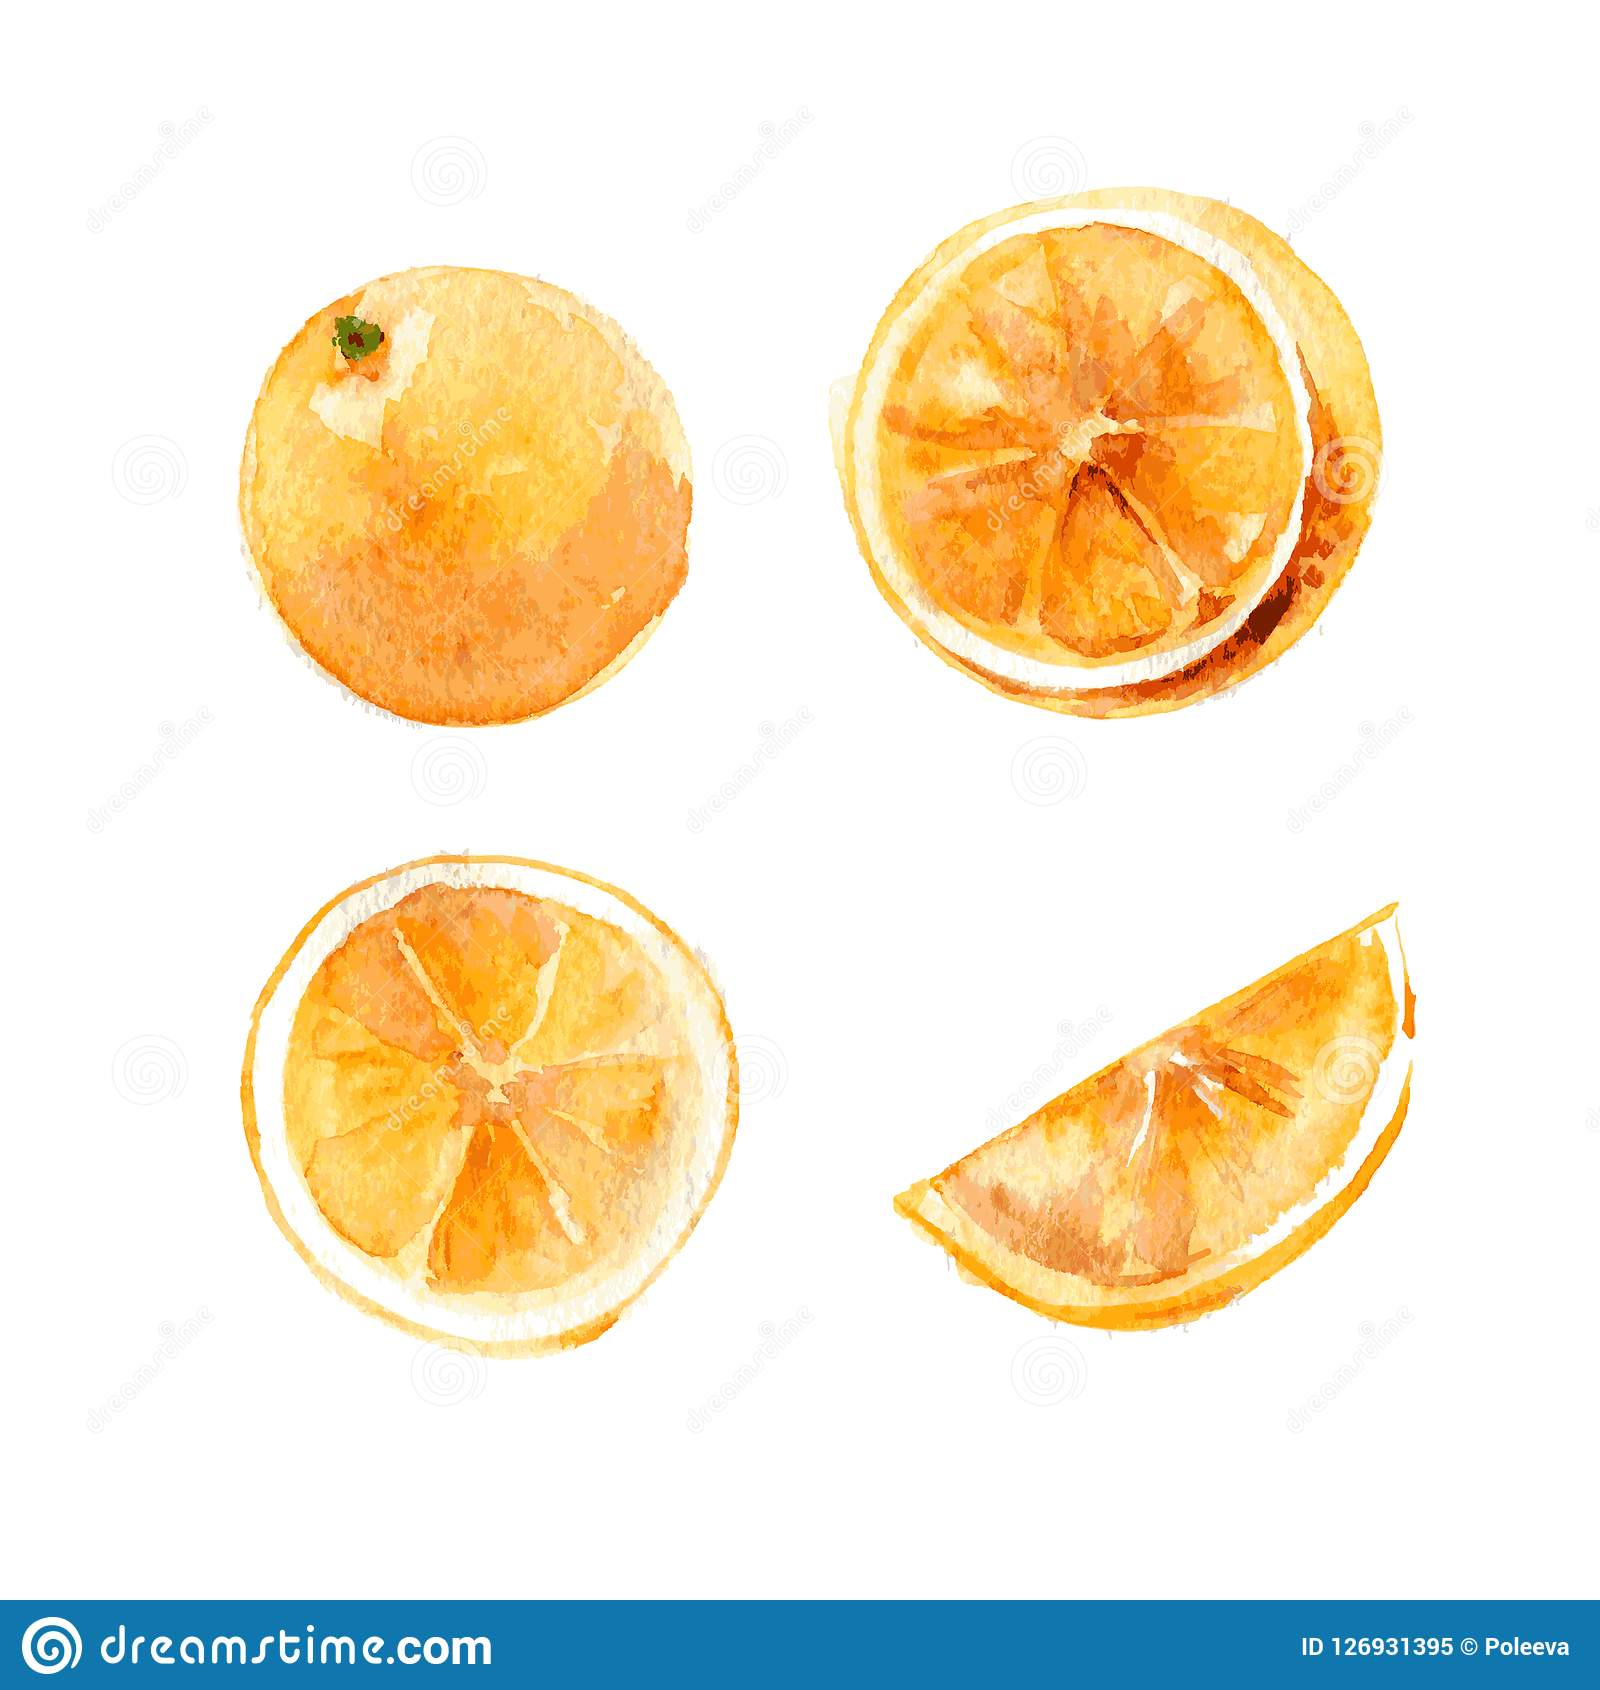 Set of whole and cut oranges on a white background. Illustration, hand-drawn watercolor. Vector.